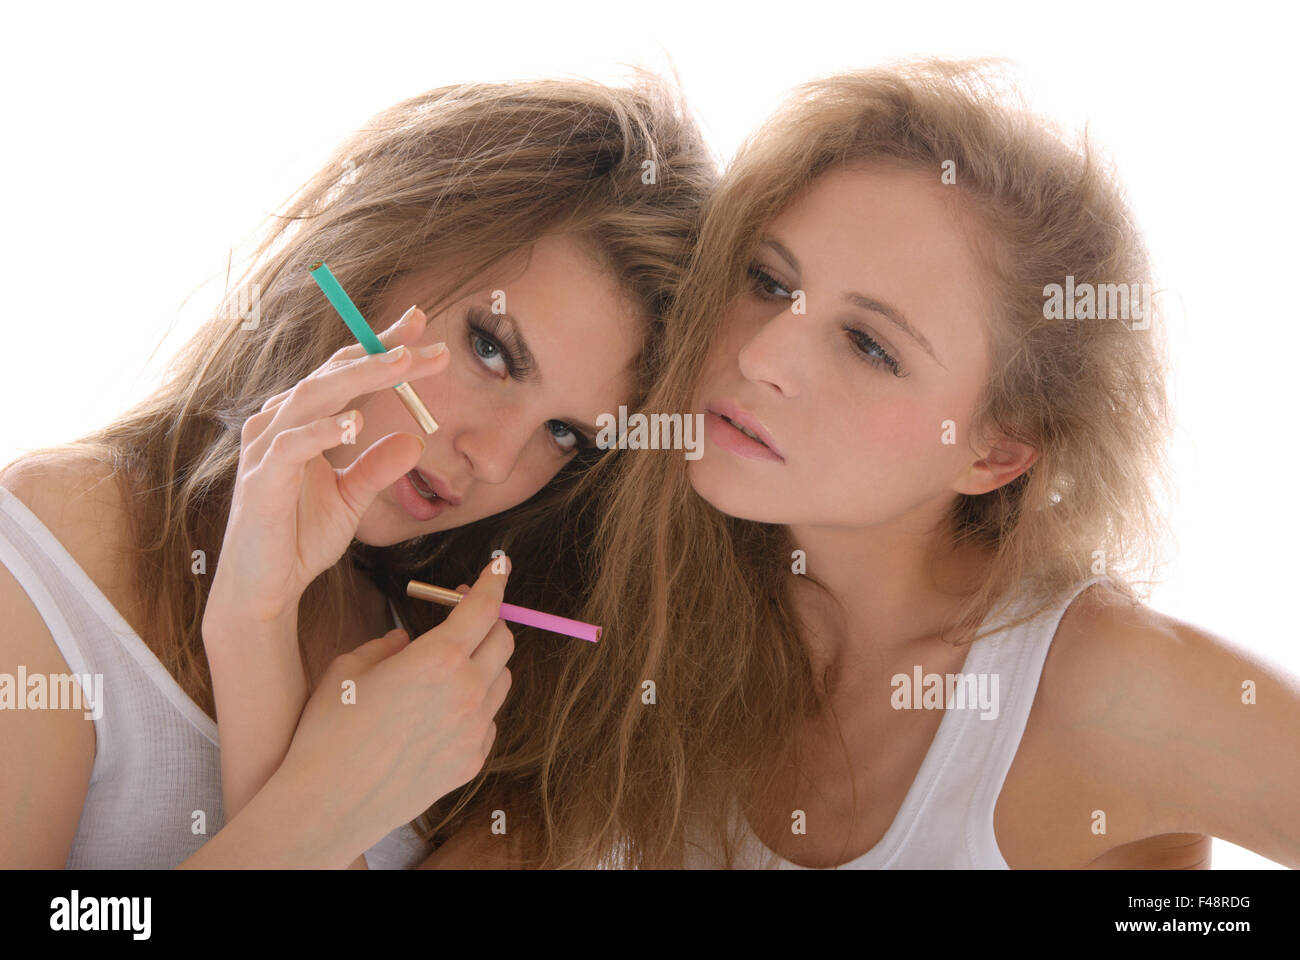 Two young women with cigarettes - Stock Image